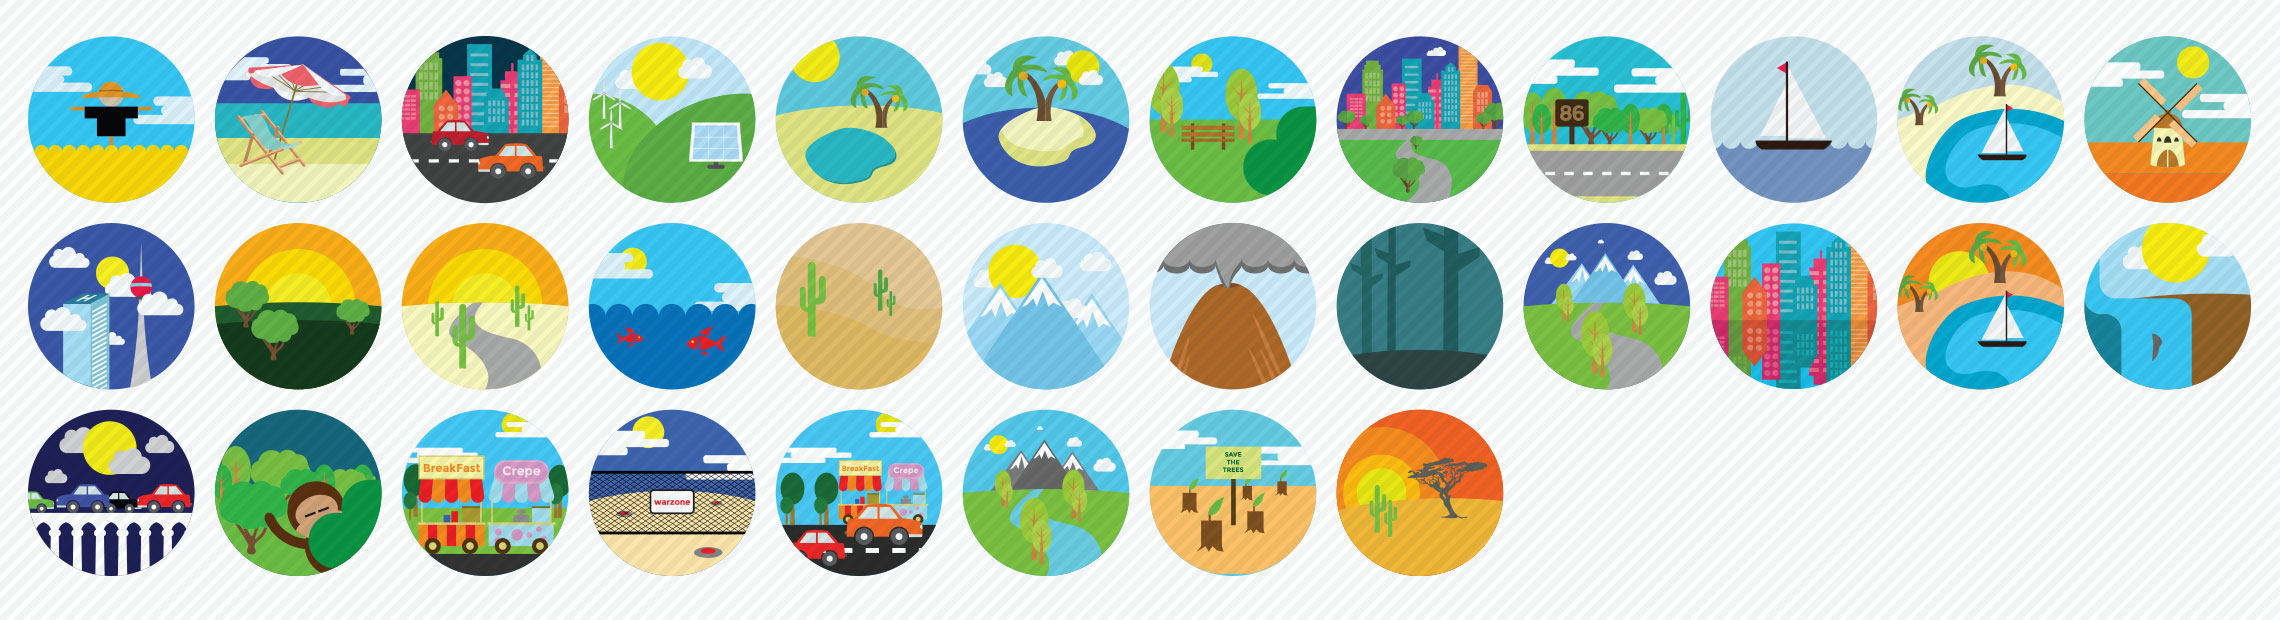 Places and Locations Flat Icons